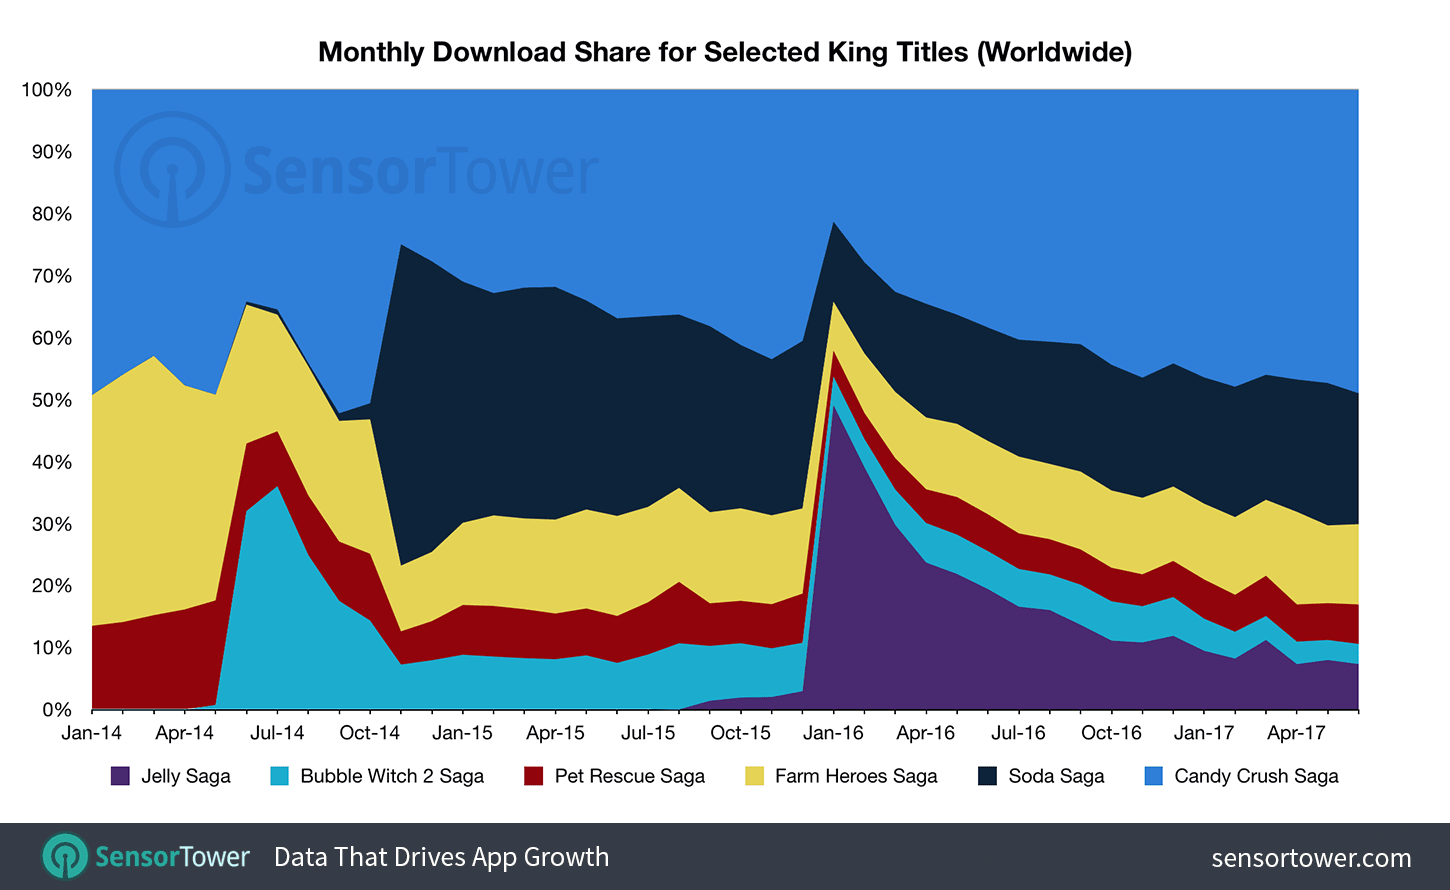 Whenever King launches a game, they drive massive amounts of users into it through cross-promotion. Just like with revenue, Candy Crush franchise with its three titles dominate the installs. What's important to notice is that despite receiving one of the biggest installs pushes, Candy Crush Jelly Saga has been unable to grab a more domi